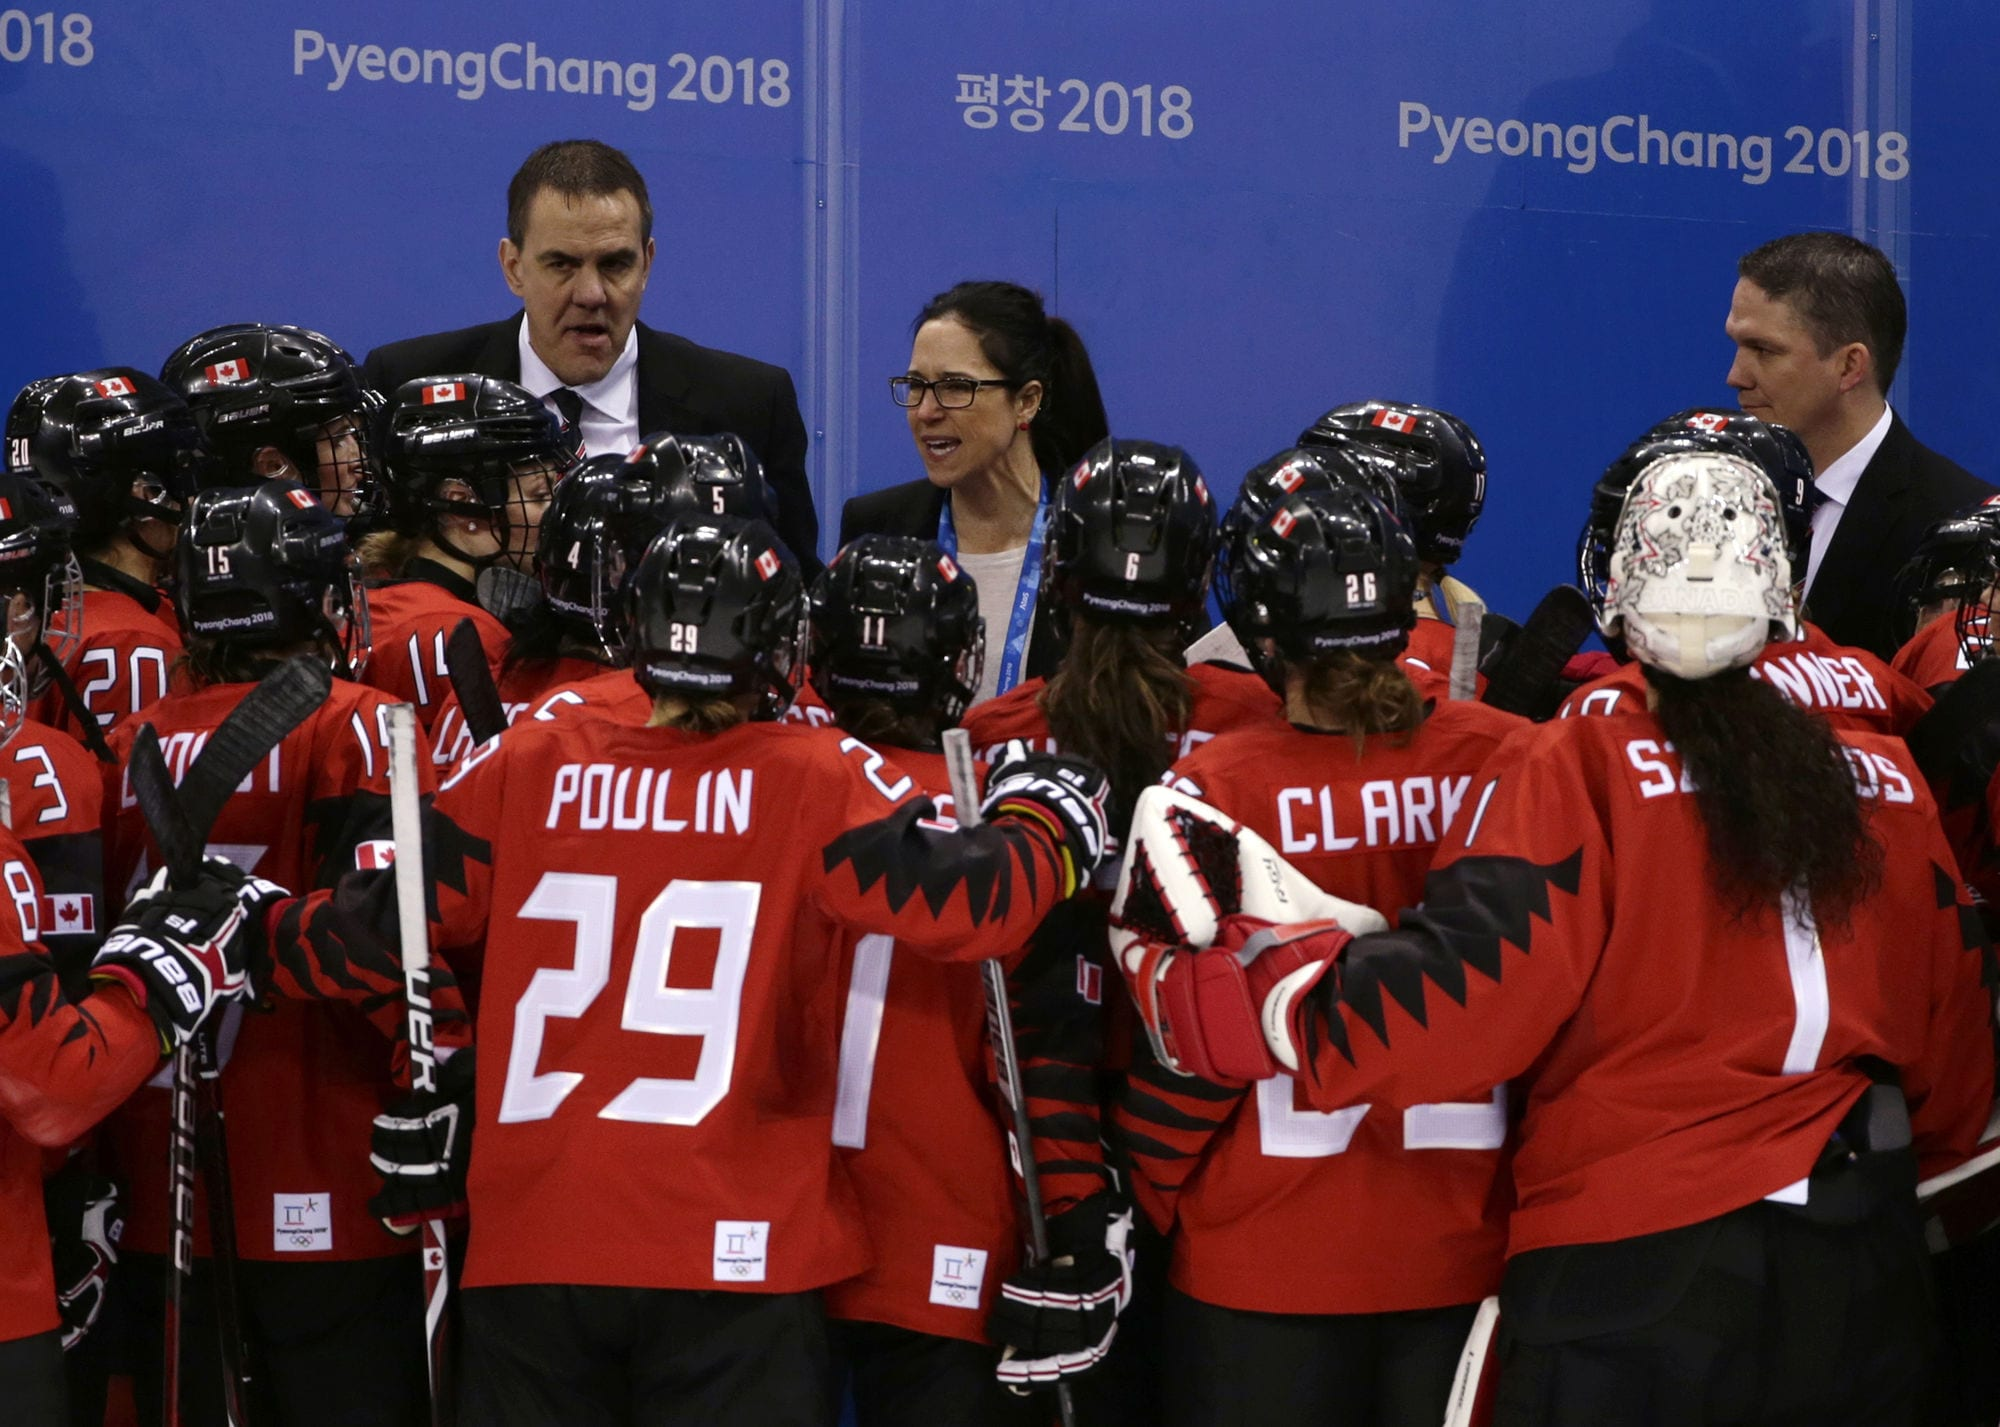 Beijing Olympics will add 2 women's hockey teams